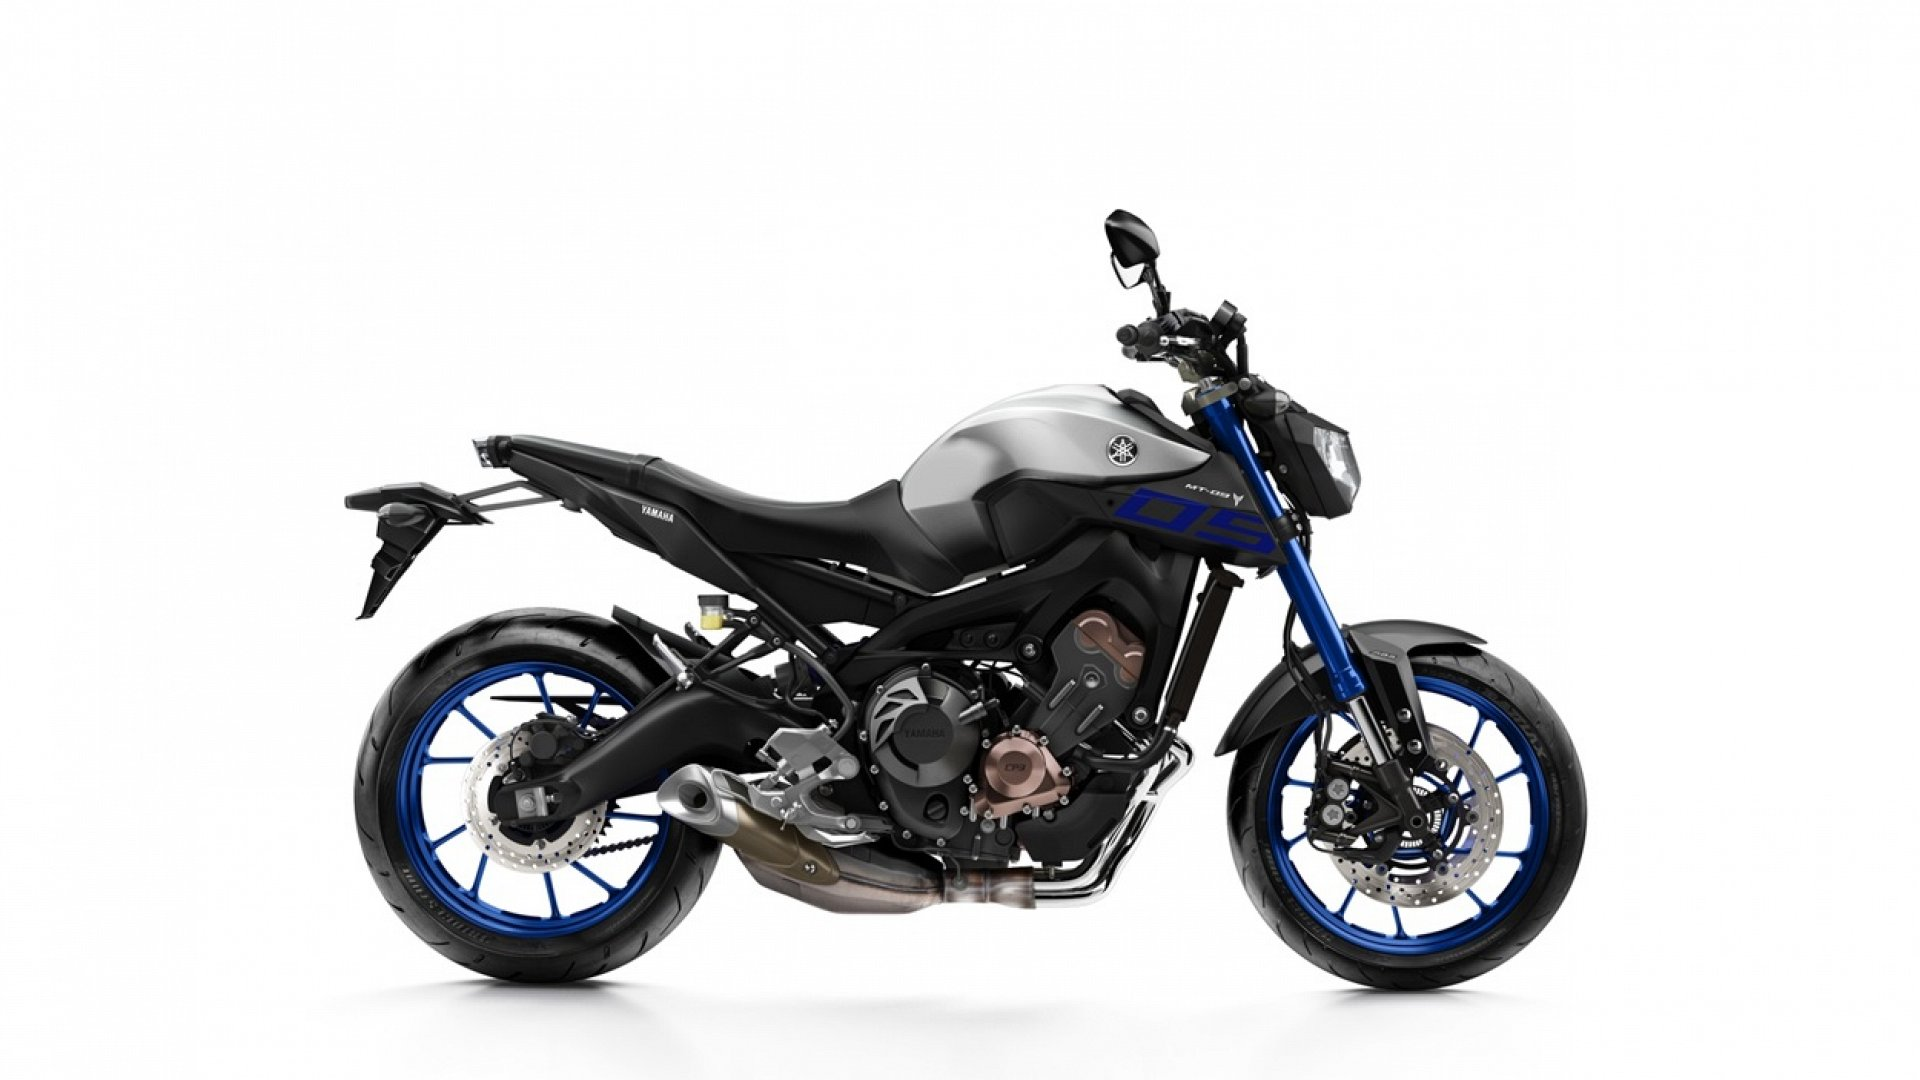 New 2016 Yamaha MT-09 / ABS for sale. Finance available and part ...: www.cmcbikes.com/new-yamaha-motorcycles/2016-yamaha-mt-09-abs